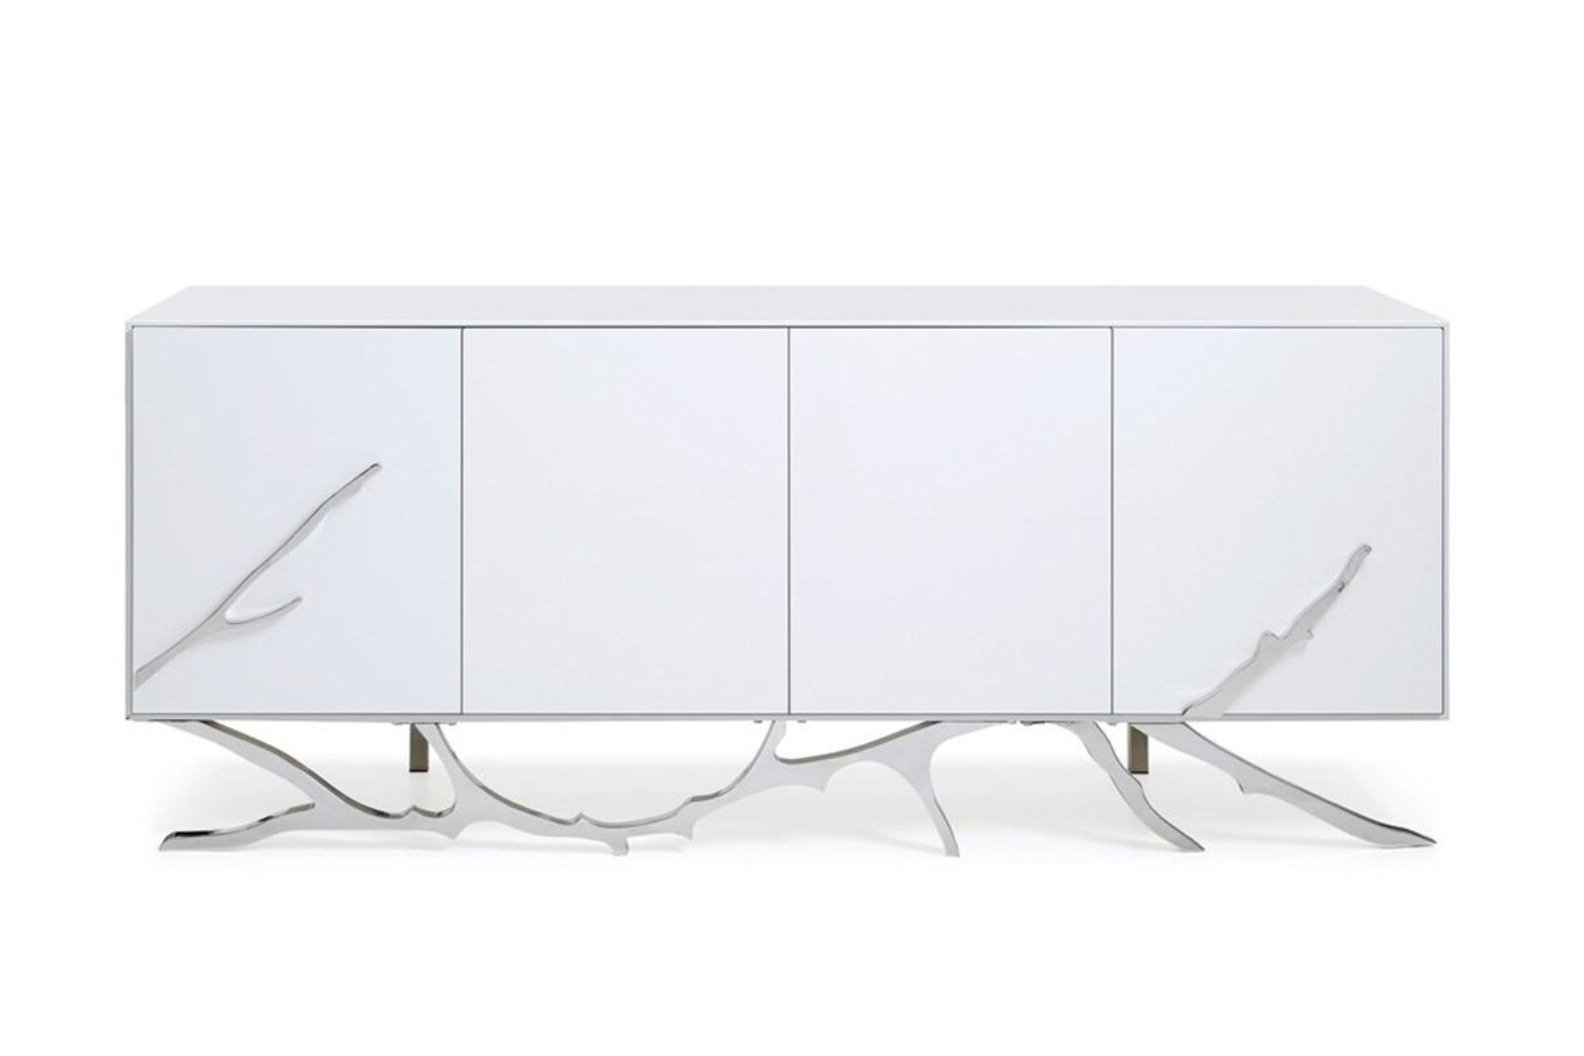 Dalessio Buffet Intended For White Wood And Chrome Metal High Gloss Buffets (View 5 of 20)